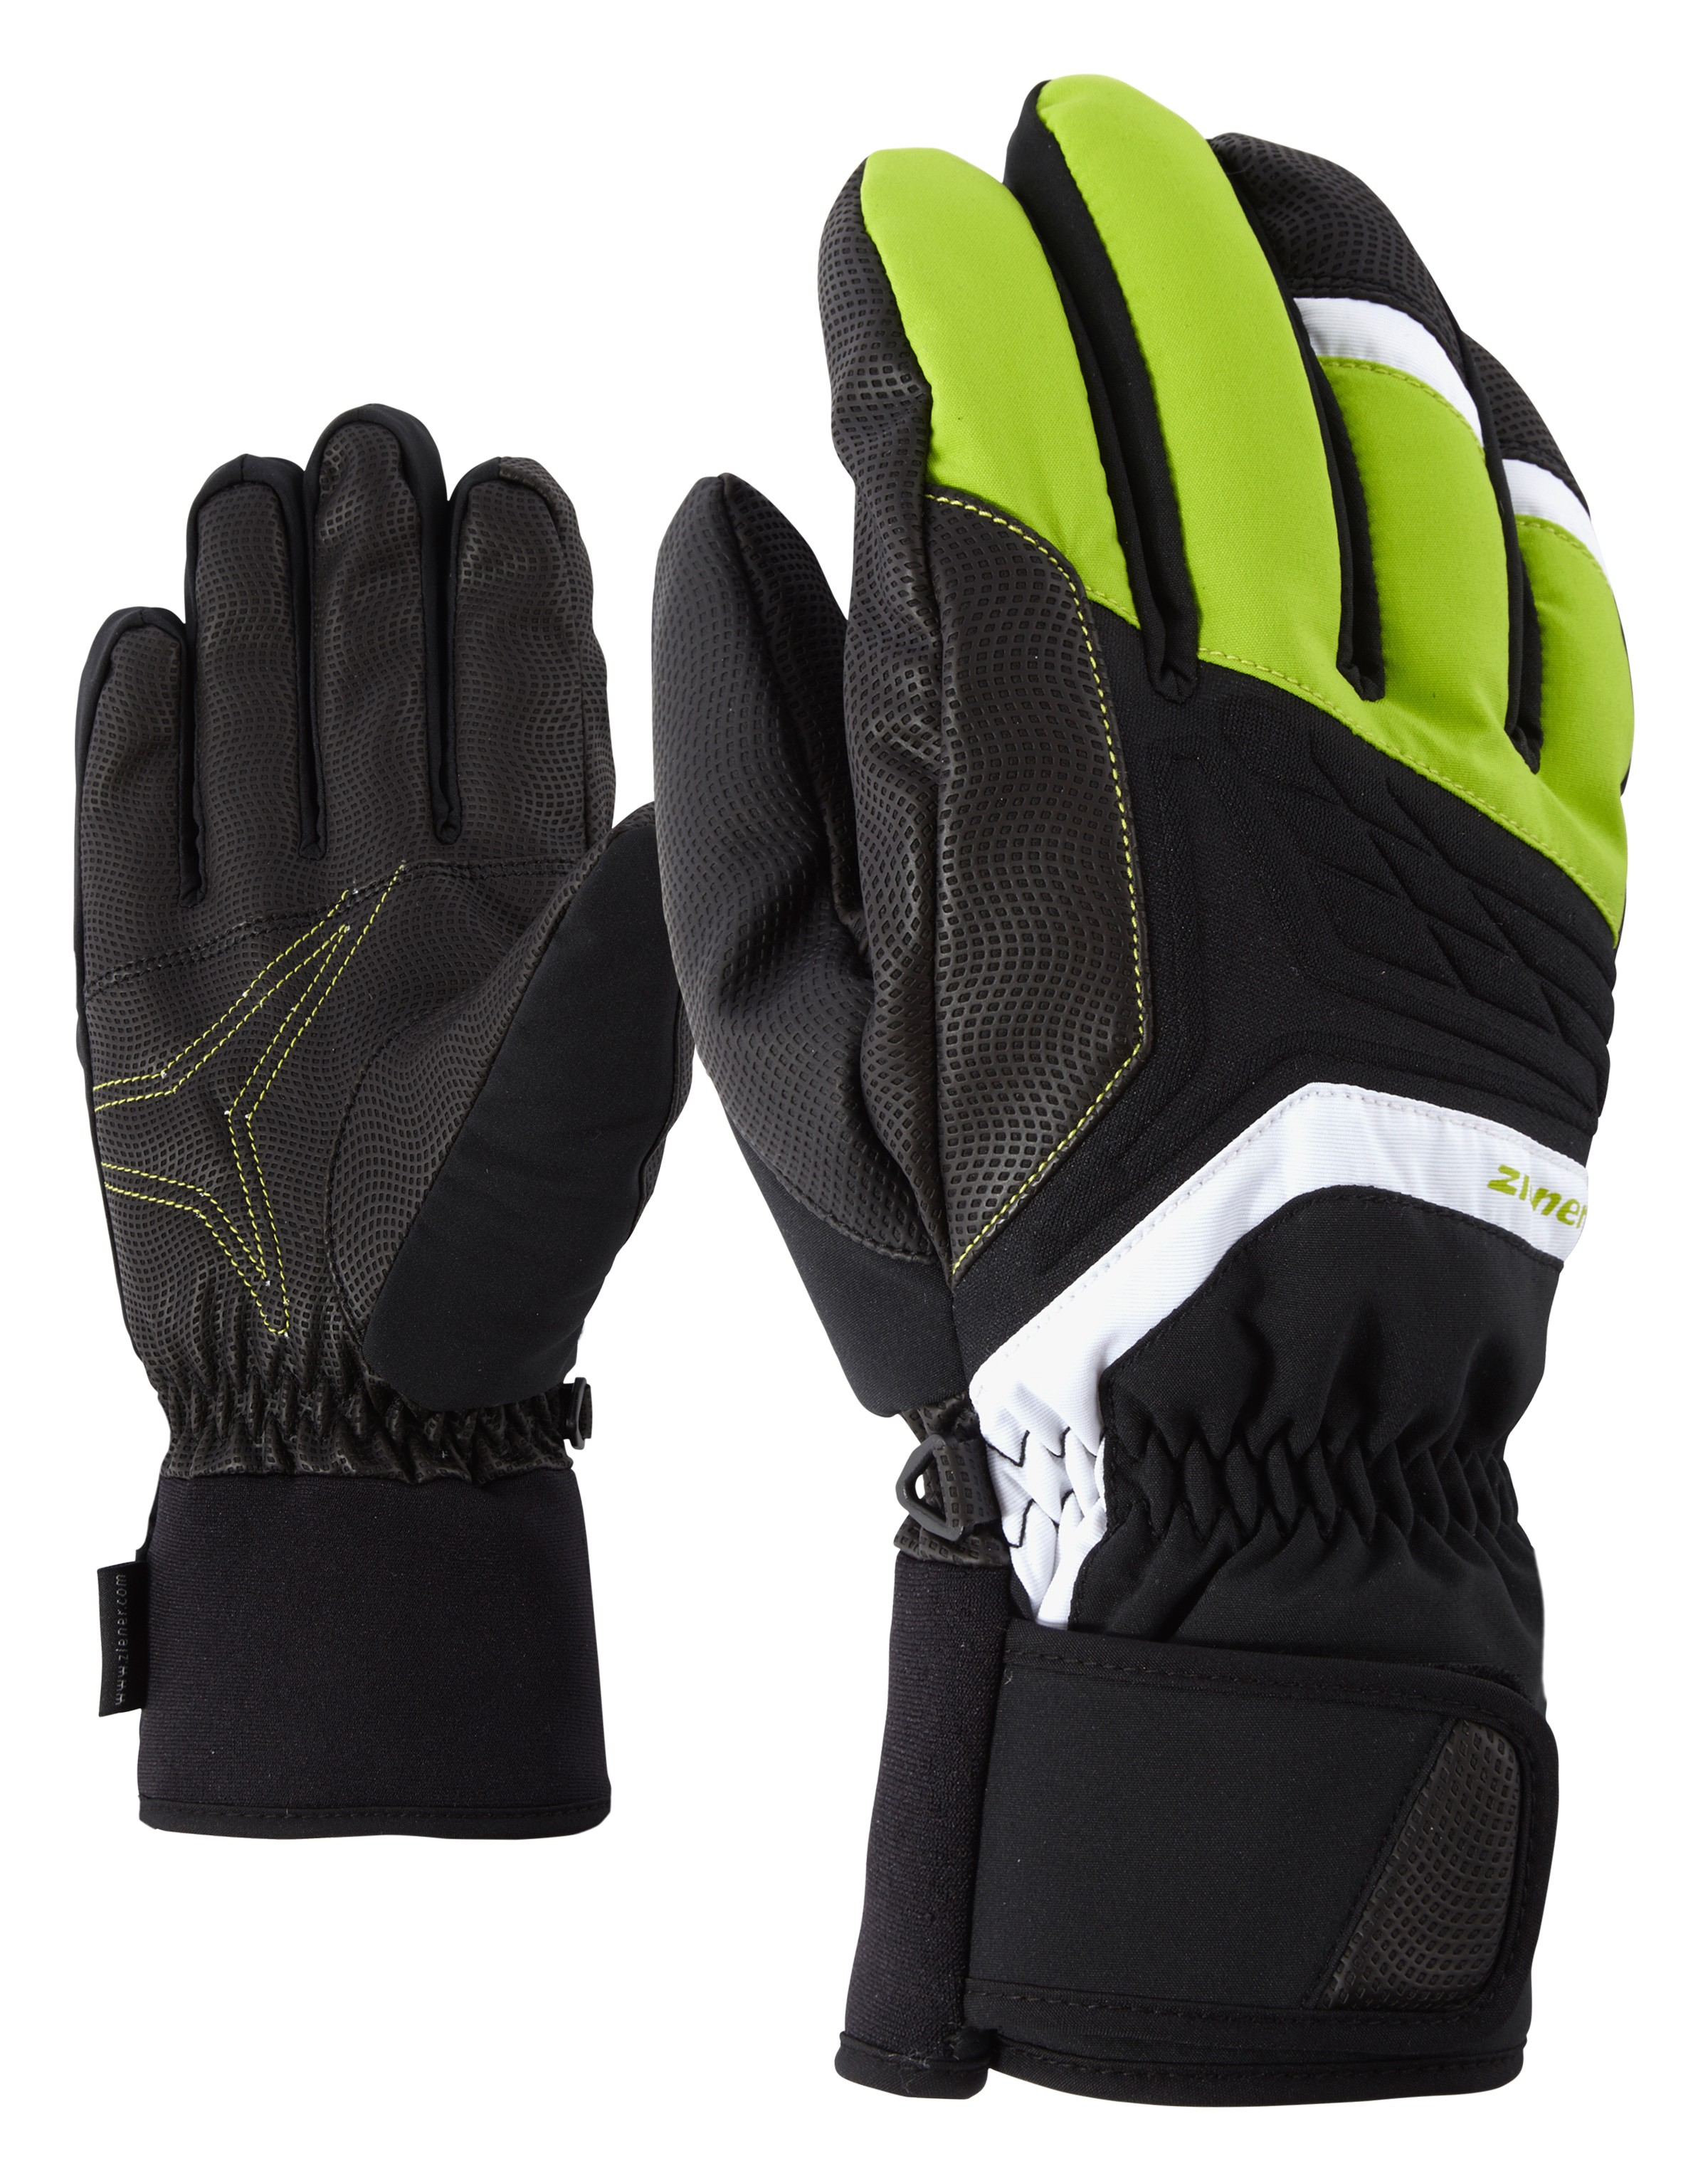 Ziener Galvin As Lime Ski Green rGlove Alpine iZwPTOkXu